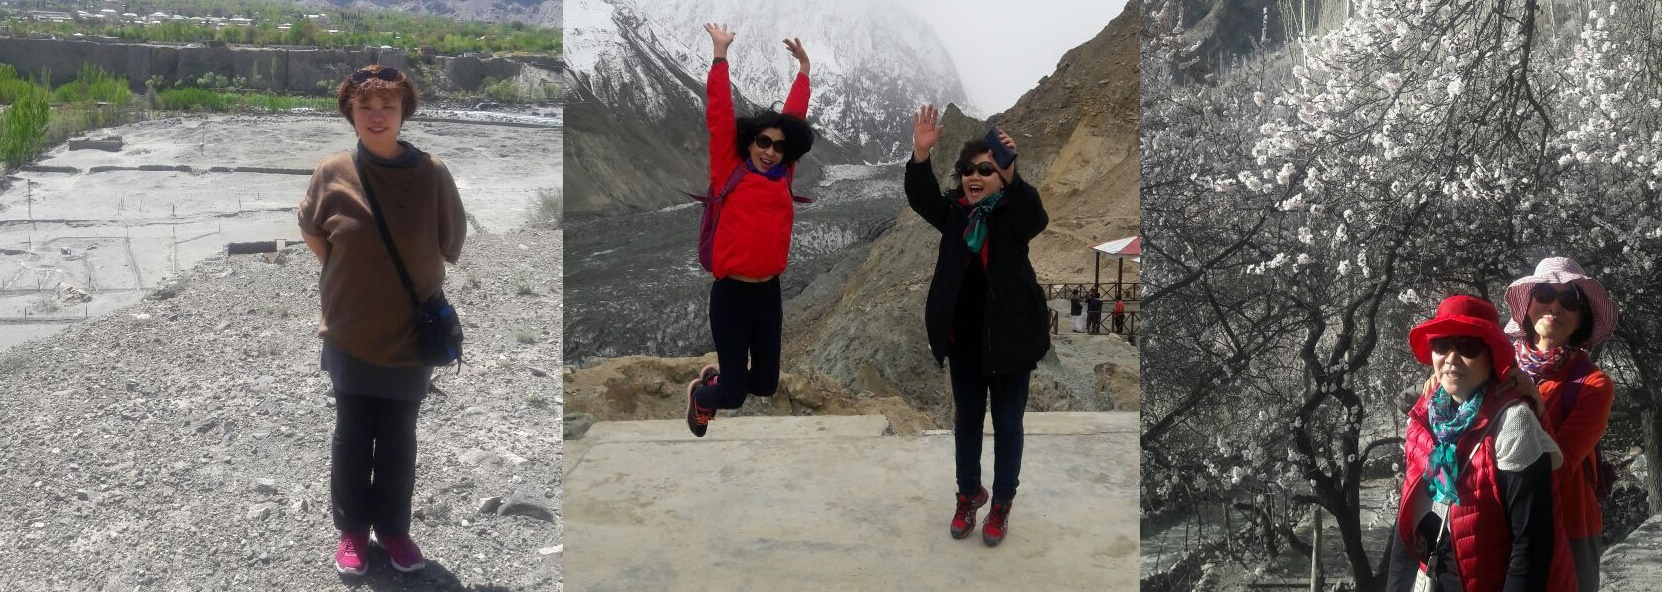 27 foreign tourists stuck in Hunza, request aerial evacuation